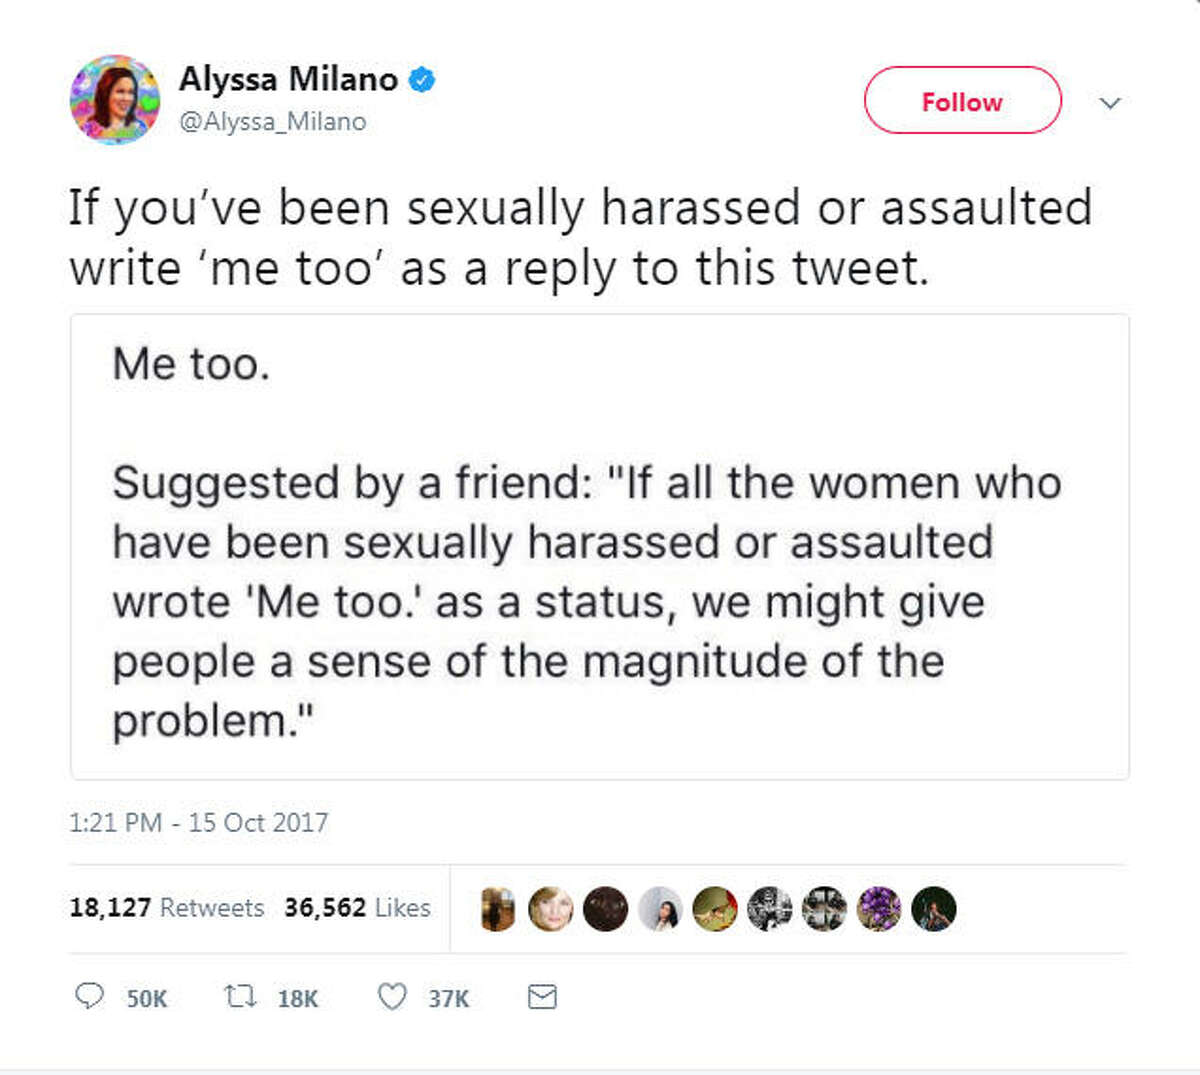 via Twitter >> See the some of the tweets celebrities and people have shared since Milano's call to action using #MeToo...